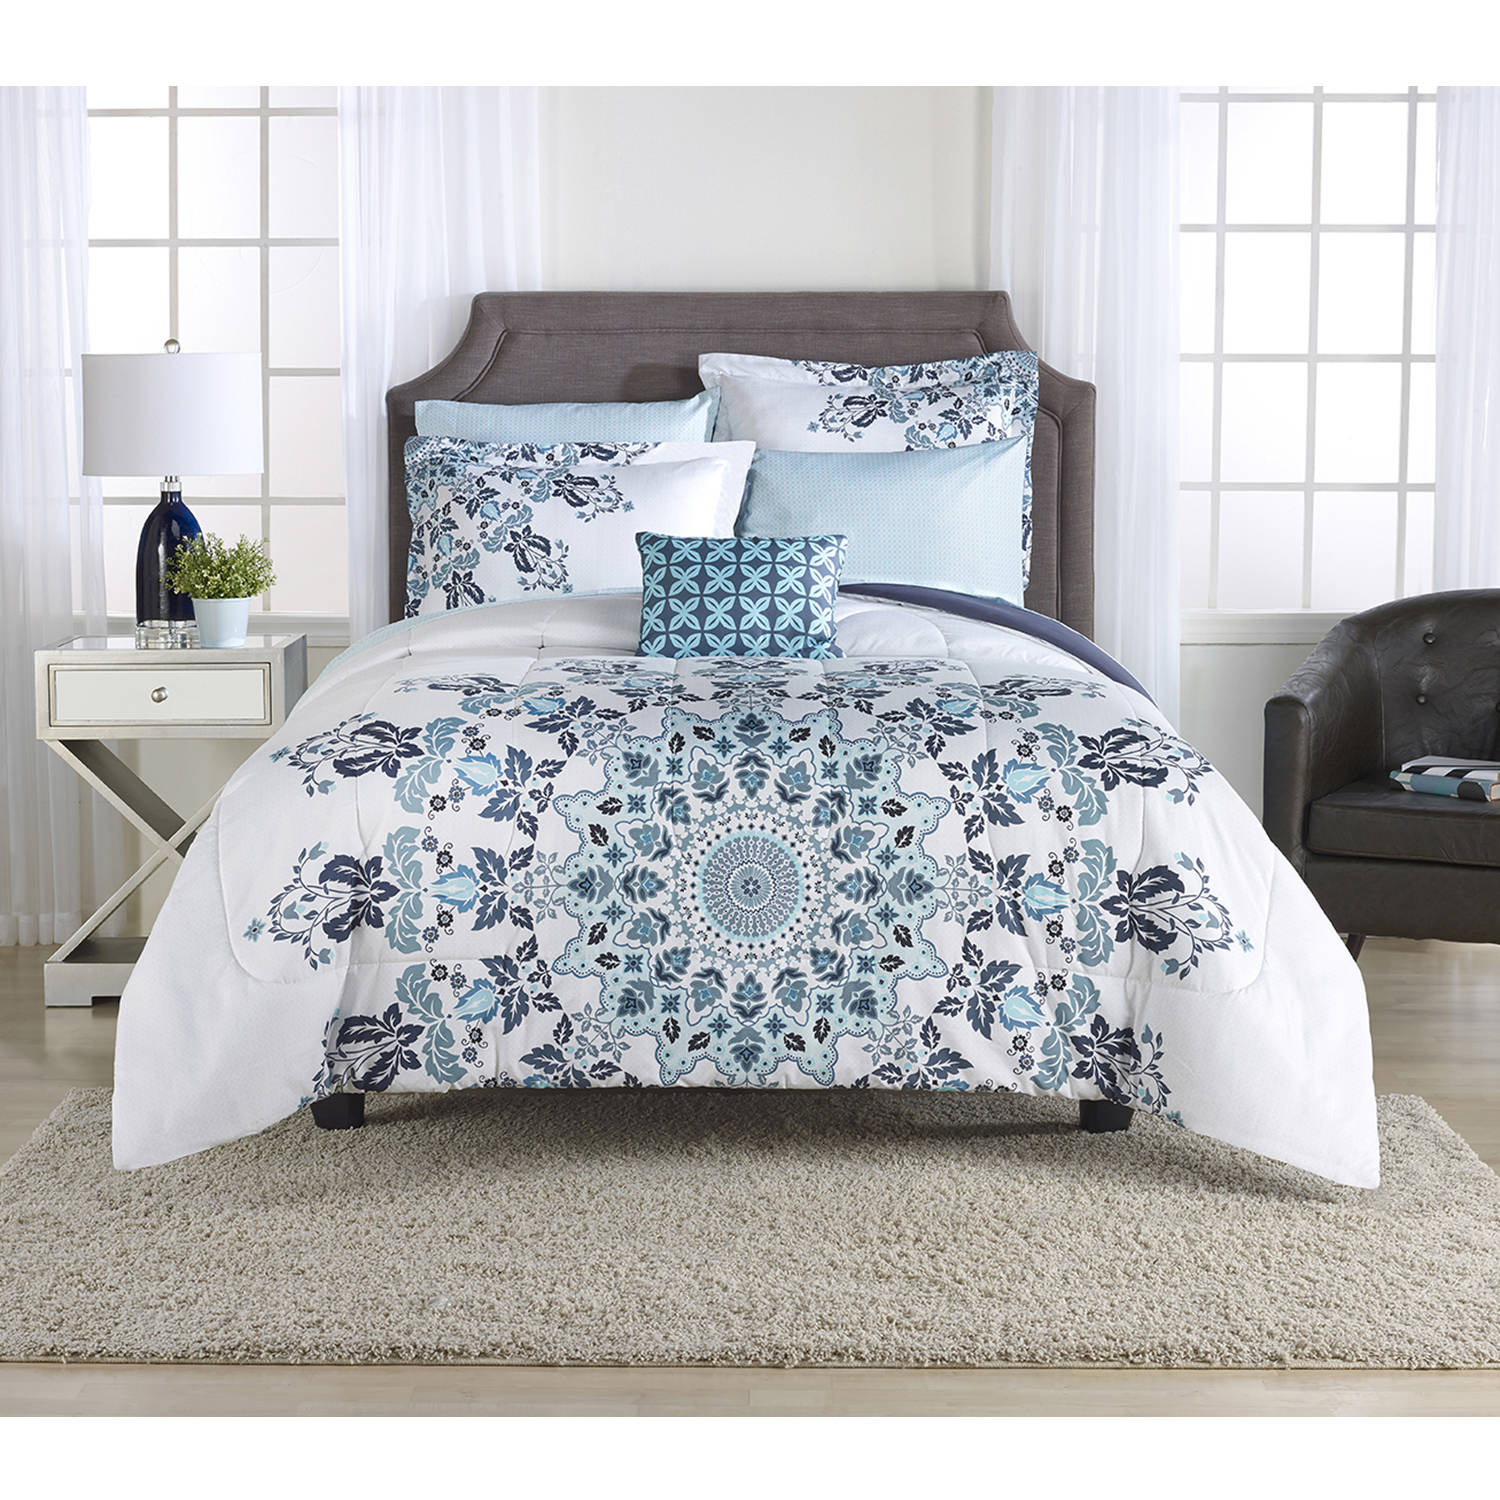 Mainstays Aqua Medallion Bed-in-a-Bag Bedding Set